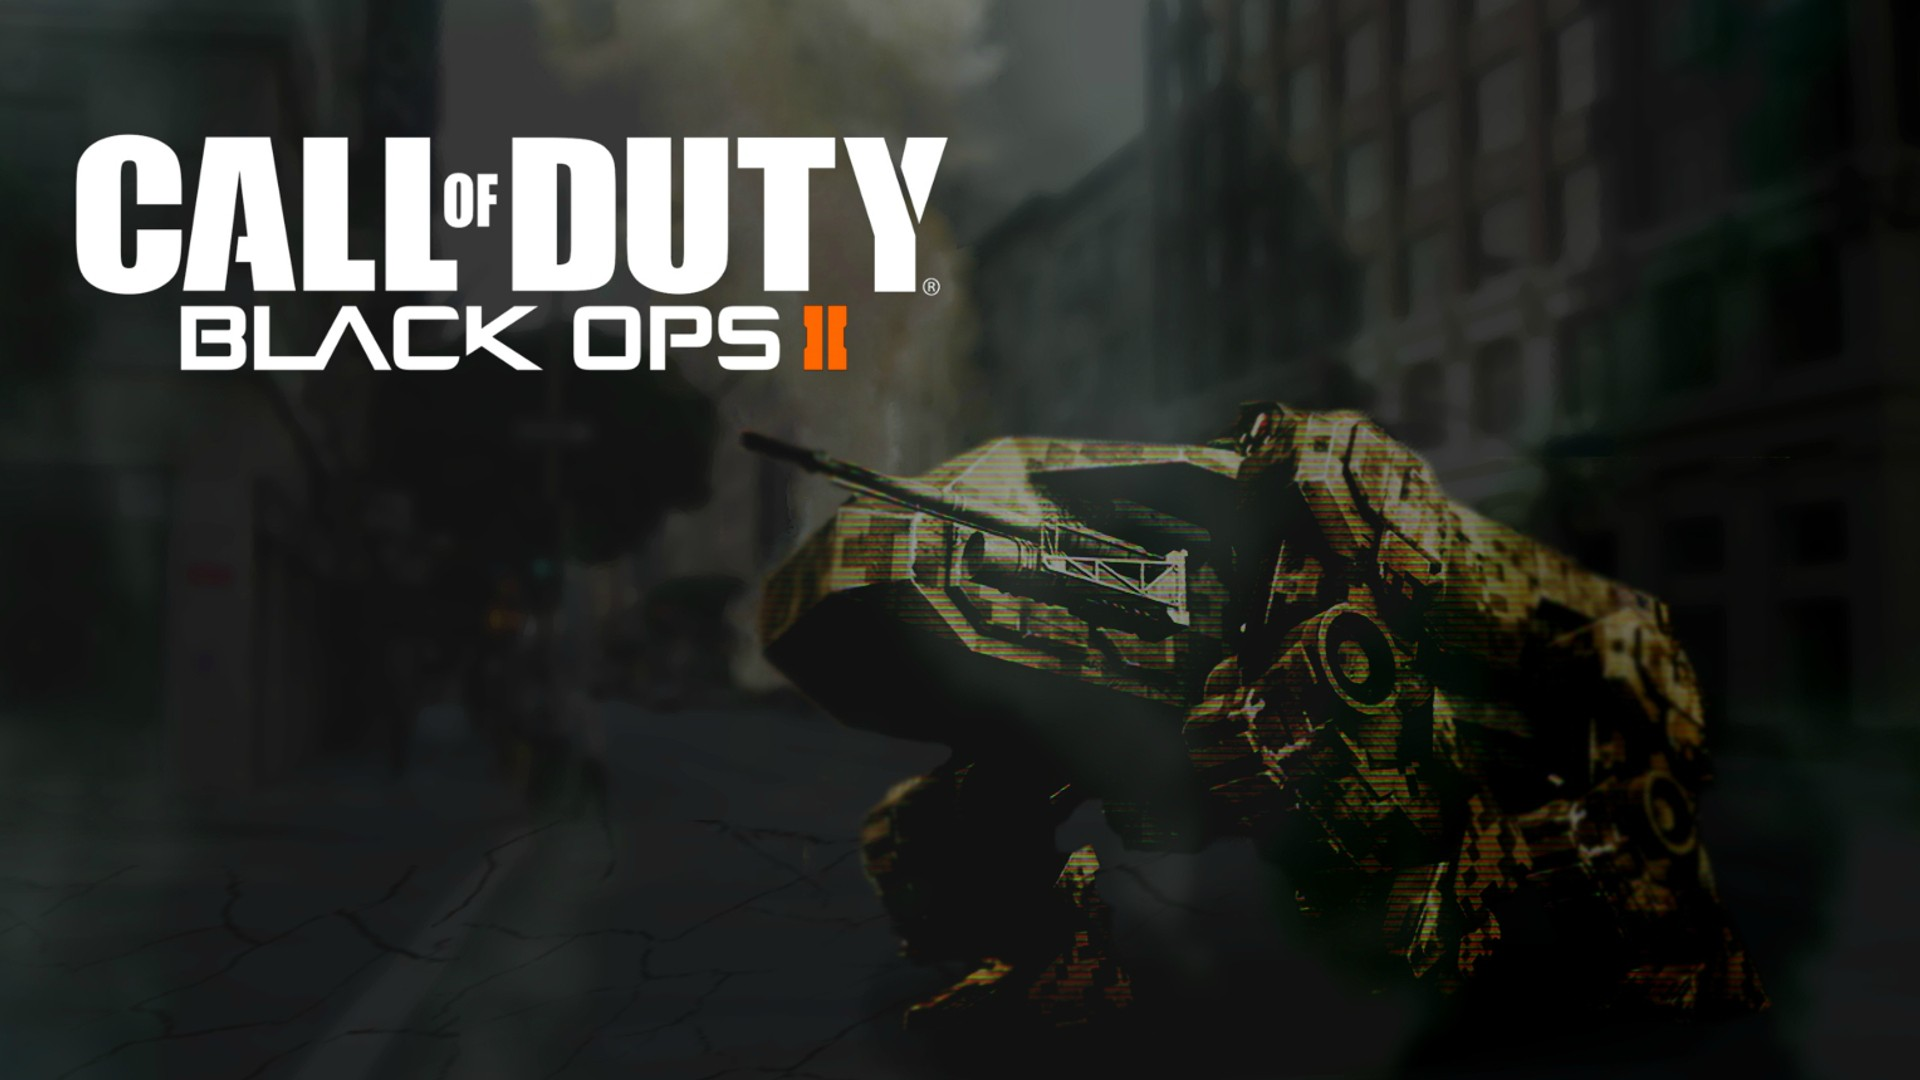 Bo2 Wallpaper To make a bo2 wallpaper 1920x1080